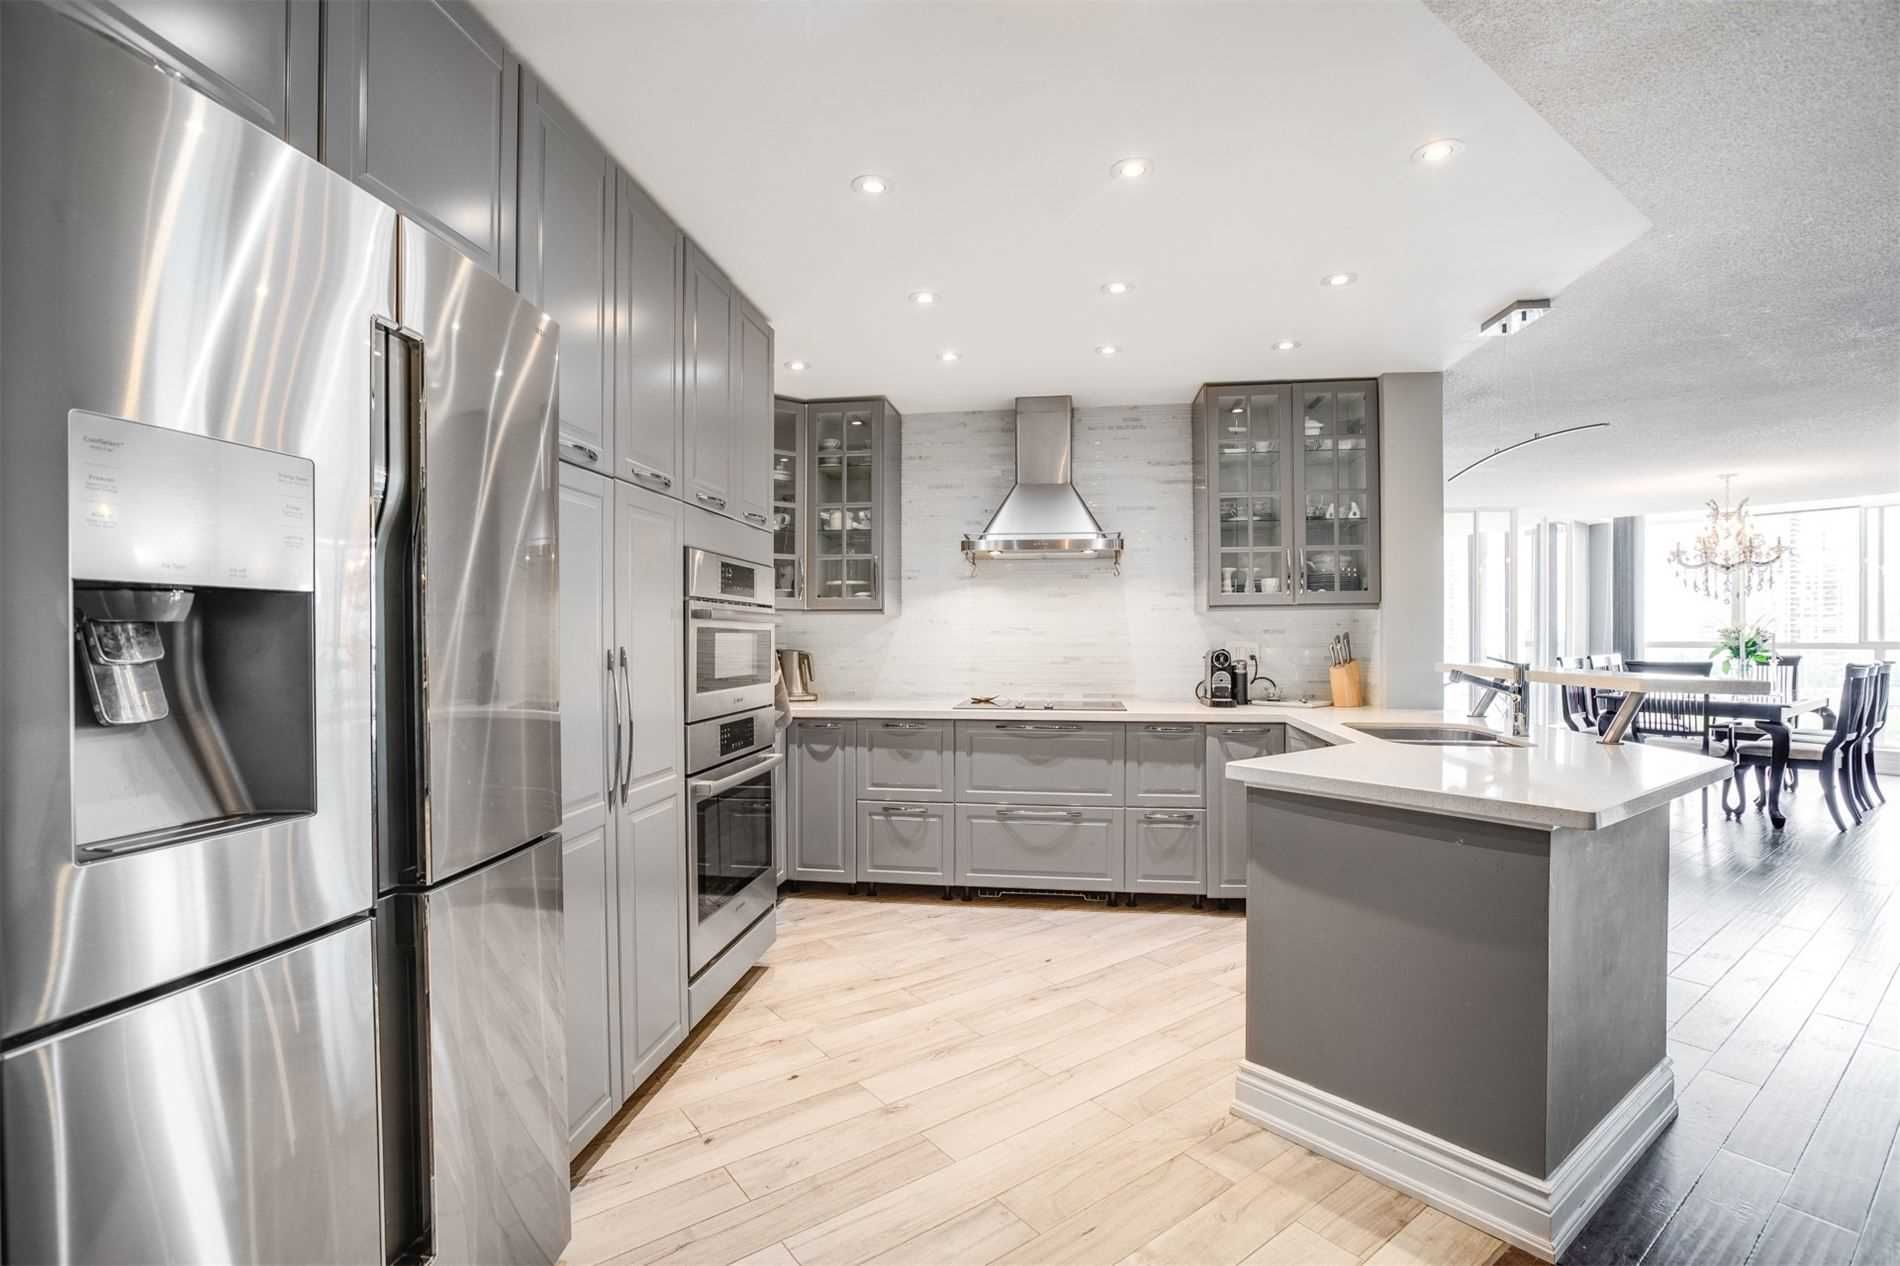 22 Southport St, unit 1040 for rent in Toronto - image #1